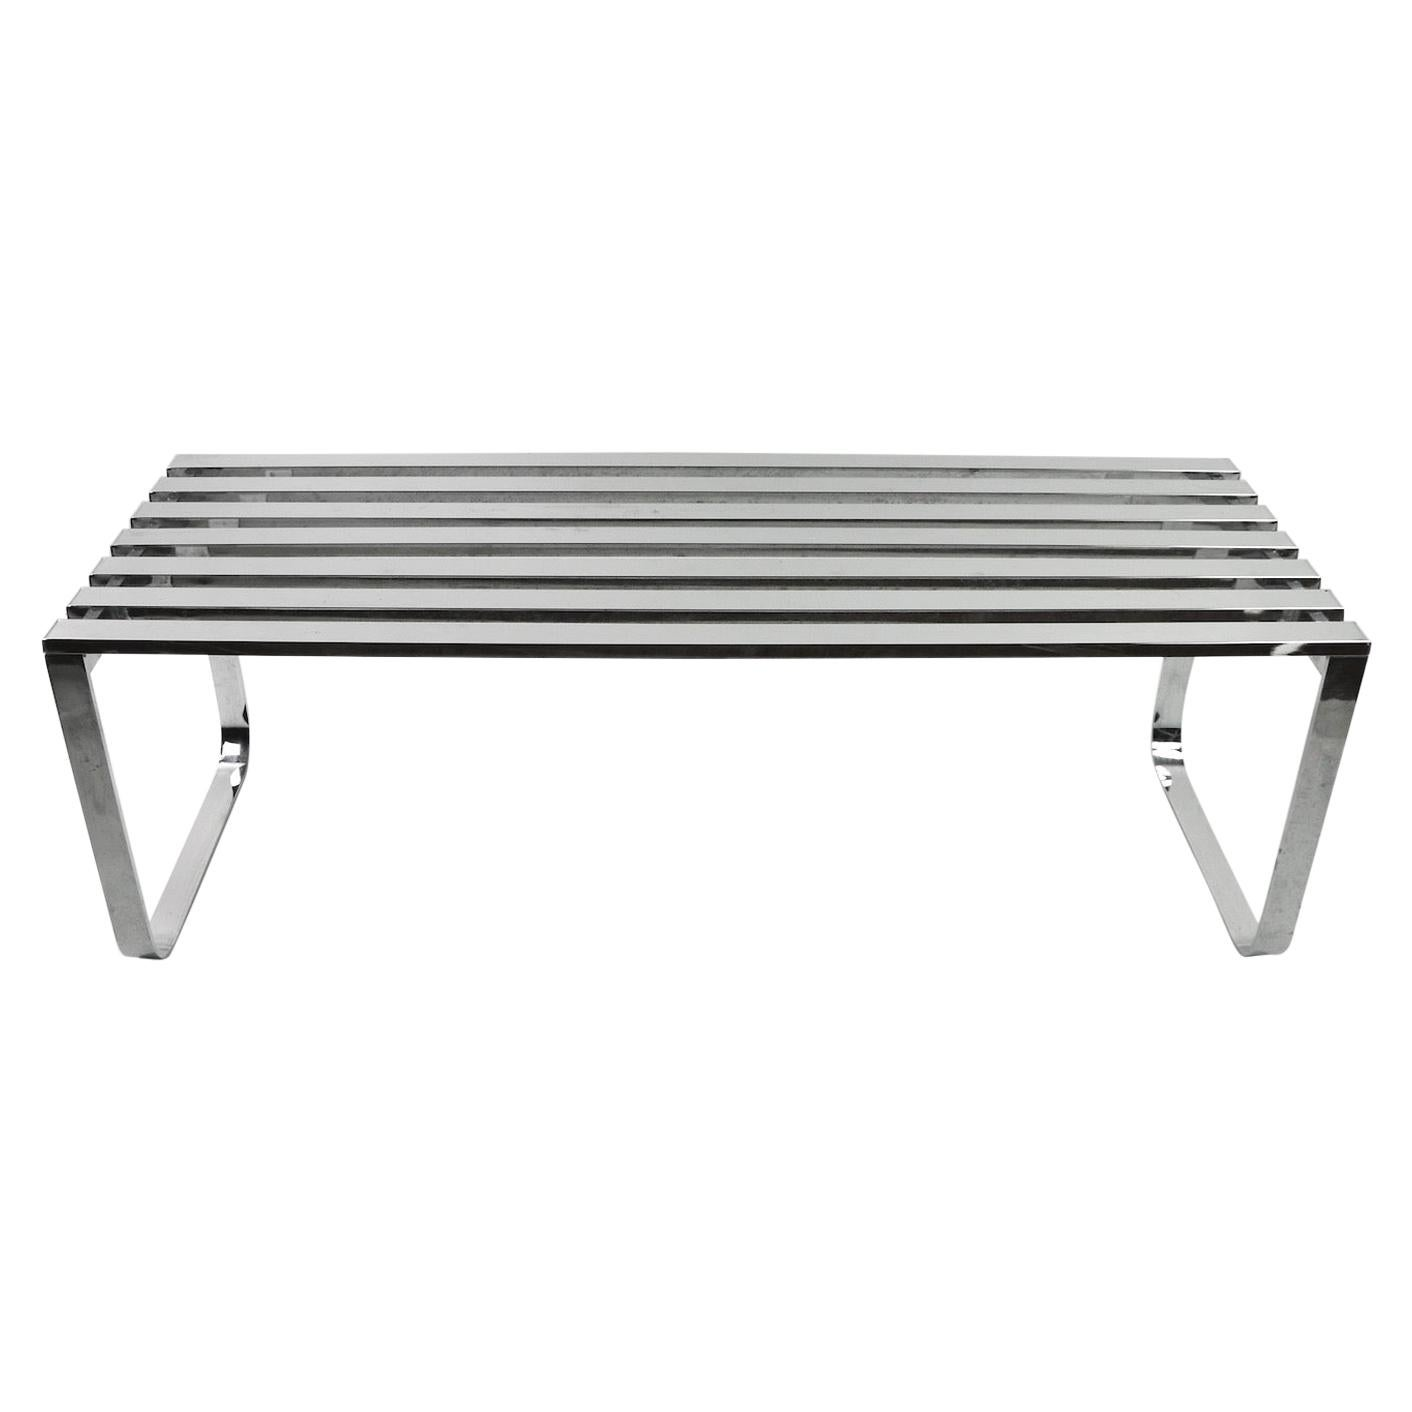 Design Institute of America Chrome Bench Coffee Table